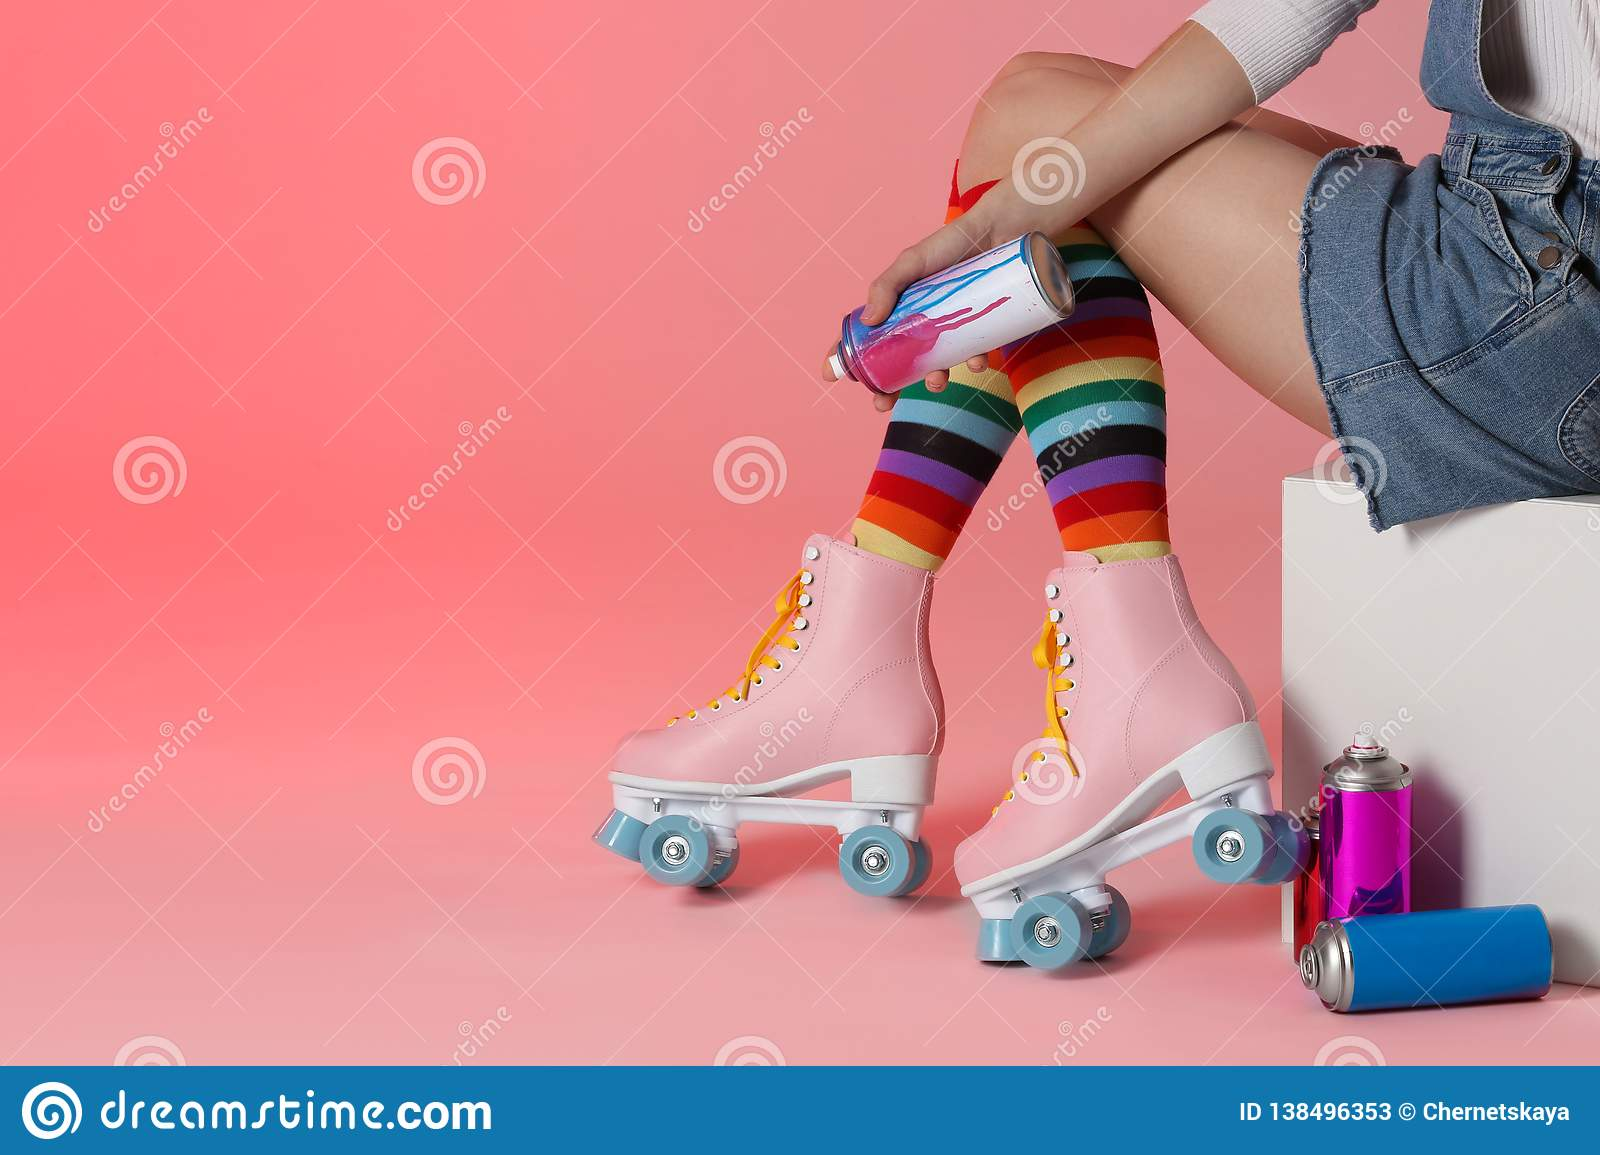 Woman With Vintage Roller Skates And Spray Paint Cans Stock Image Image Of Paint Pink 138496353